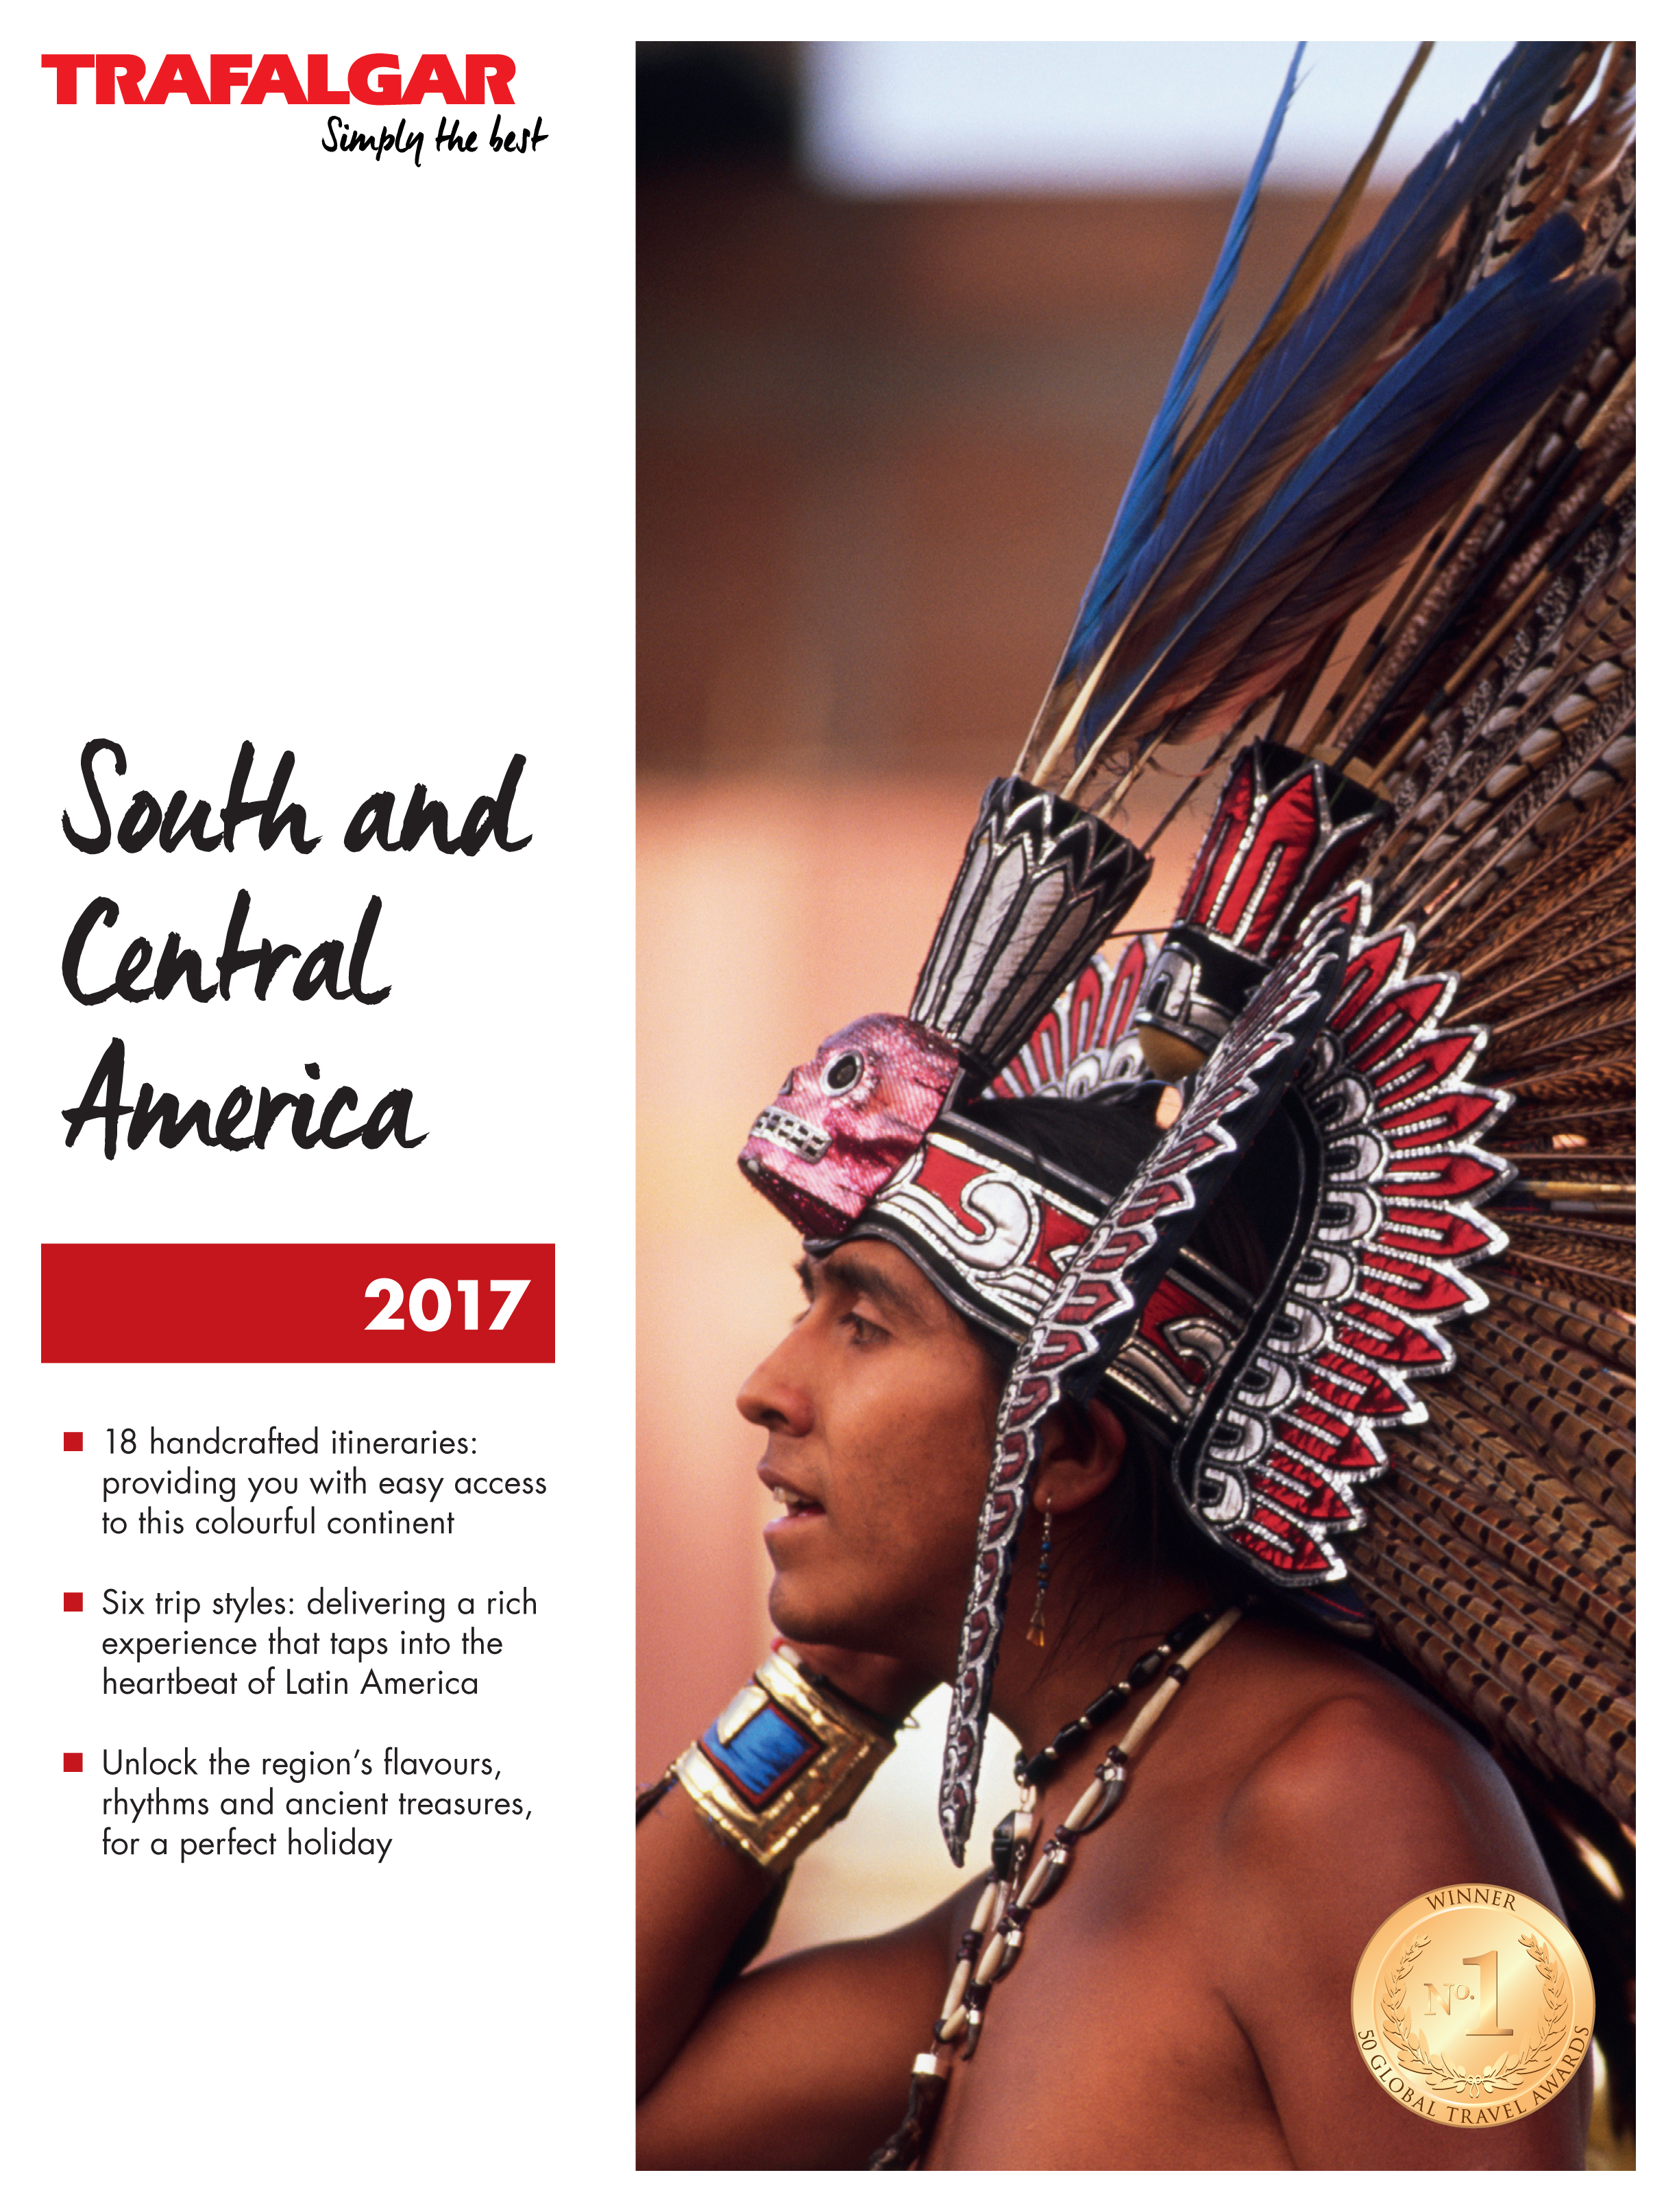 SOUTH AND CENTRAL AMERICA 2017